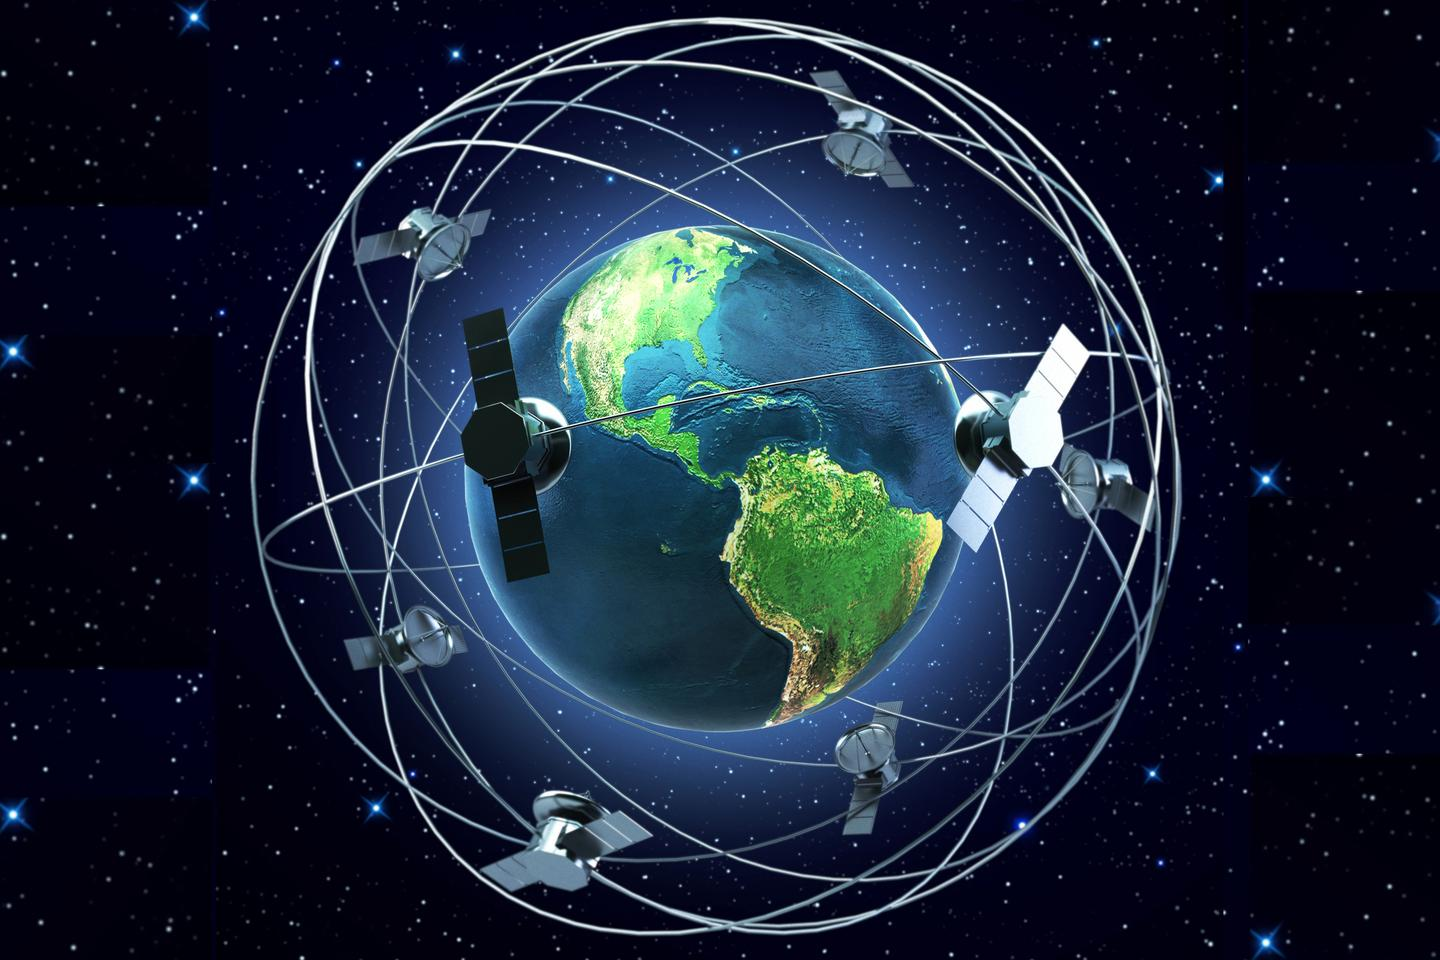 A constellation of satellites combined with terrestrial networks would provide seamless 5G connectivity around the globe